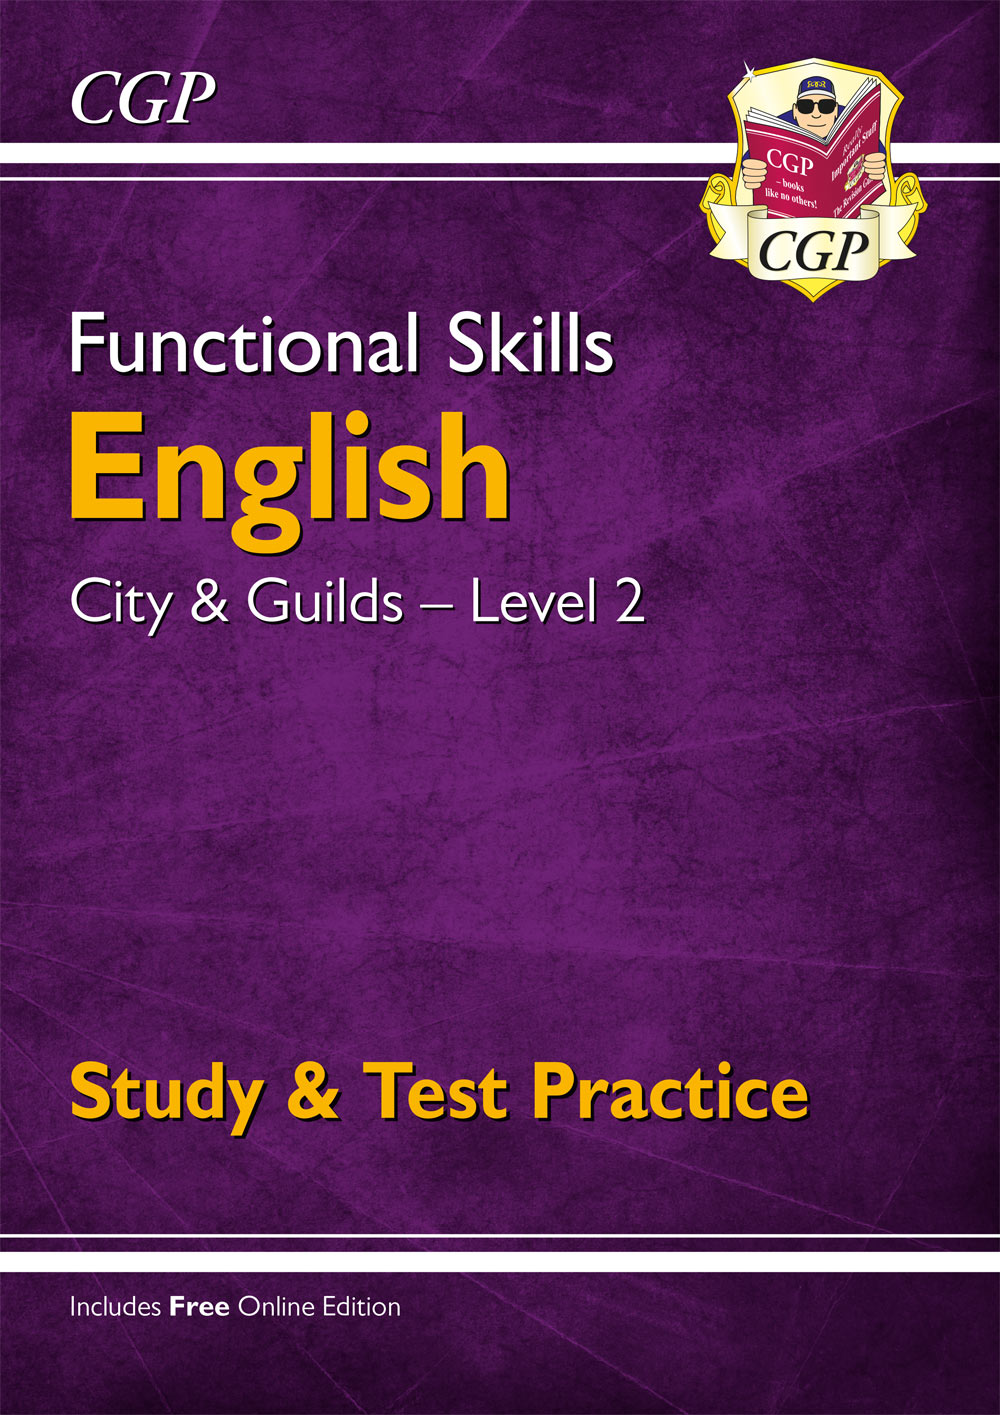 E2CGSRA1 - New Functional Skills English: City & Guilds Level 2 - Study & Test Practice (for 2019 &